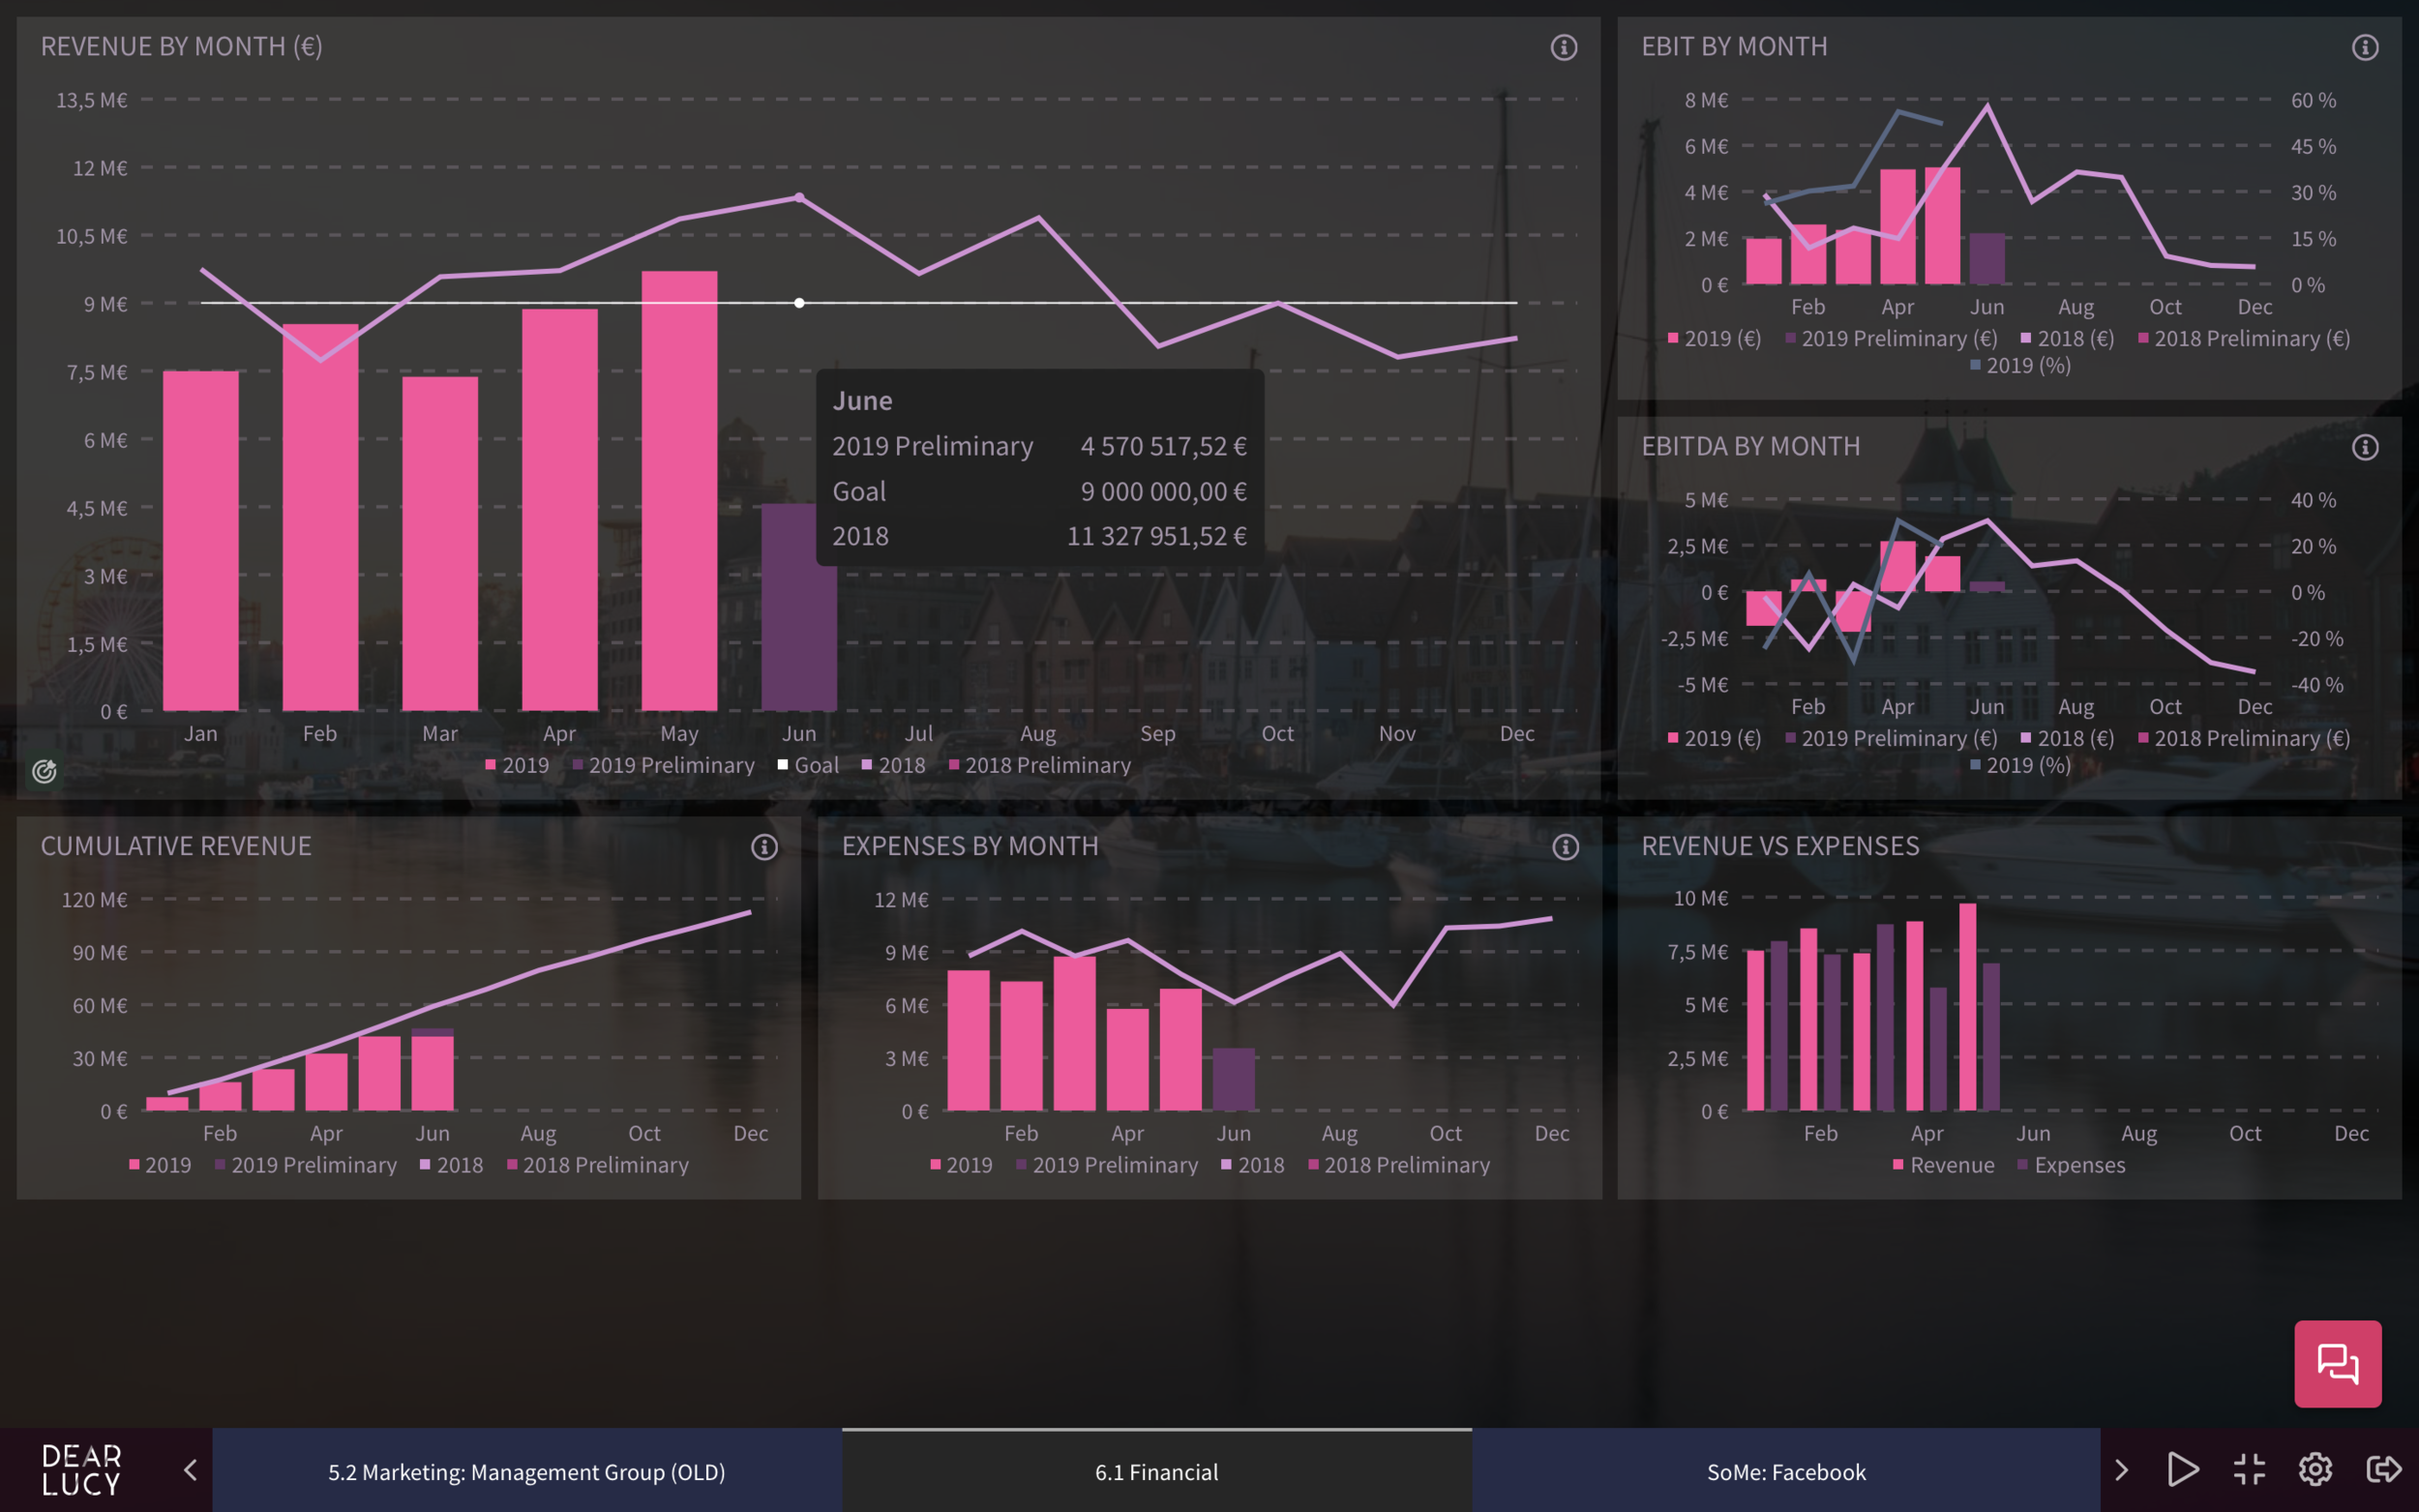 The financials dashboard includes the key financial figures of the month from Visma Netvisor.